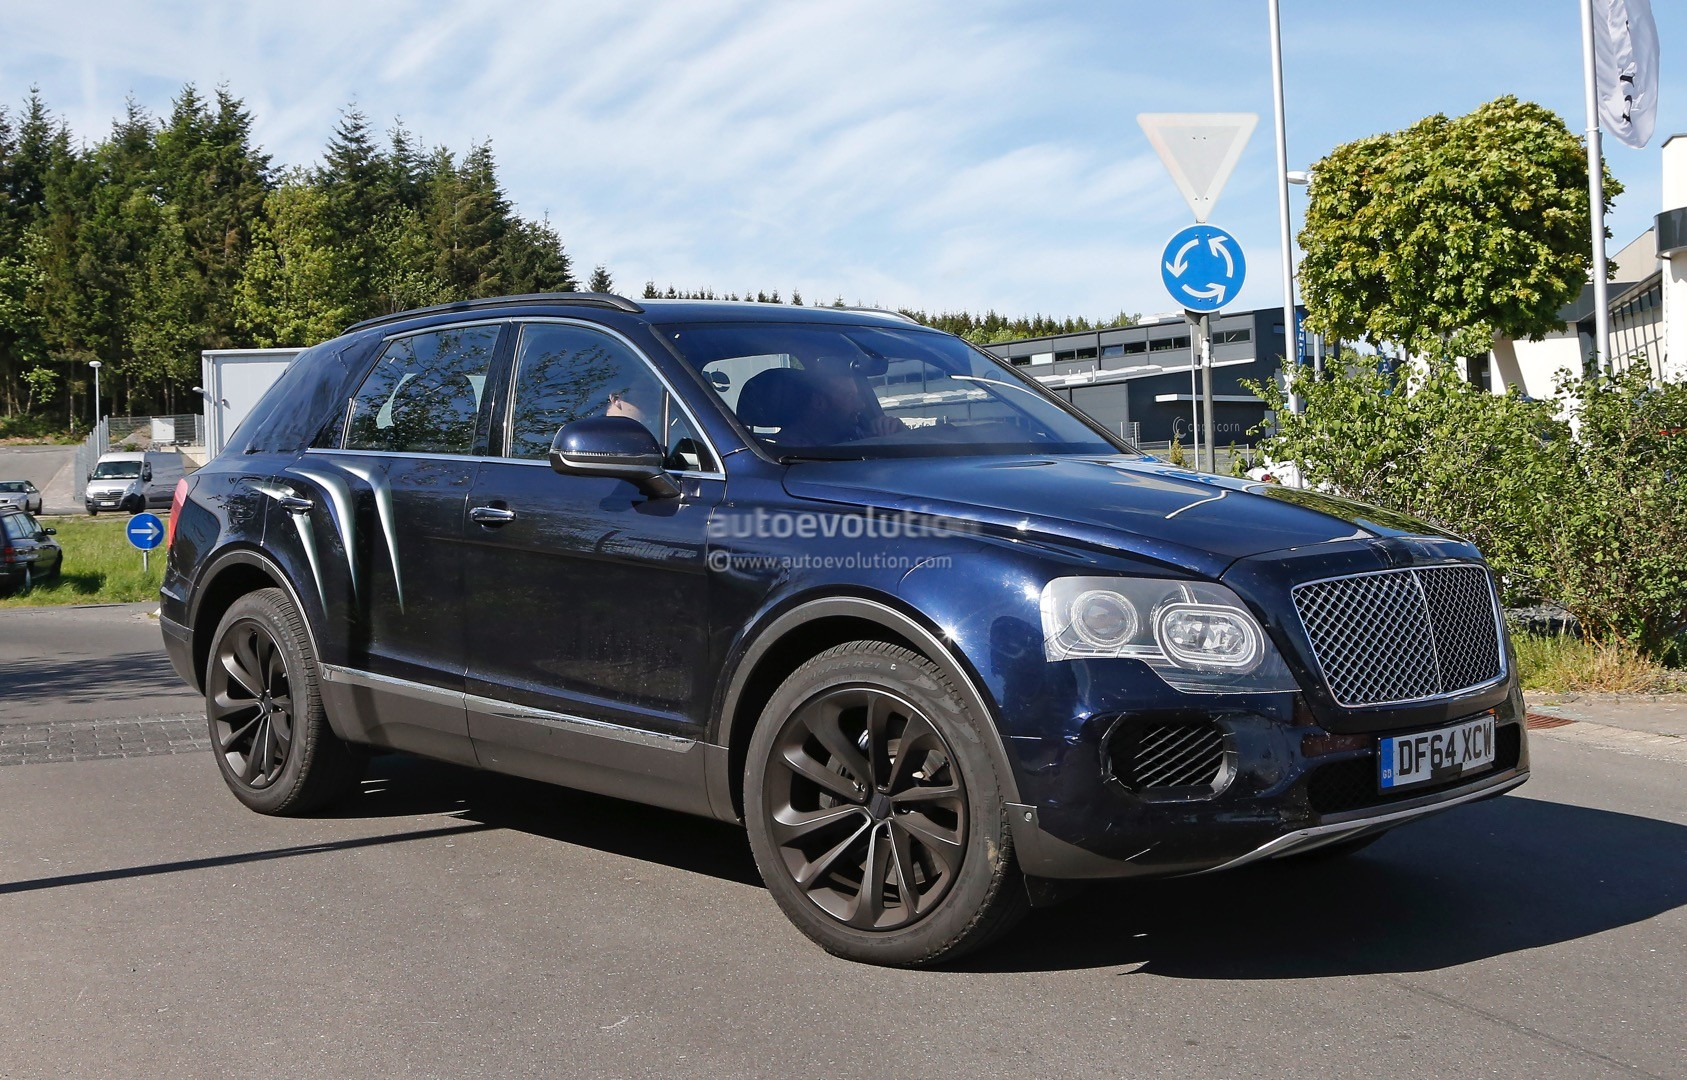 2016 Bentley Bentayga SUV Spotted Nearly Camo Free - autoevolution